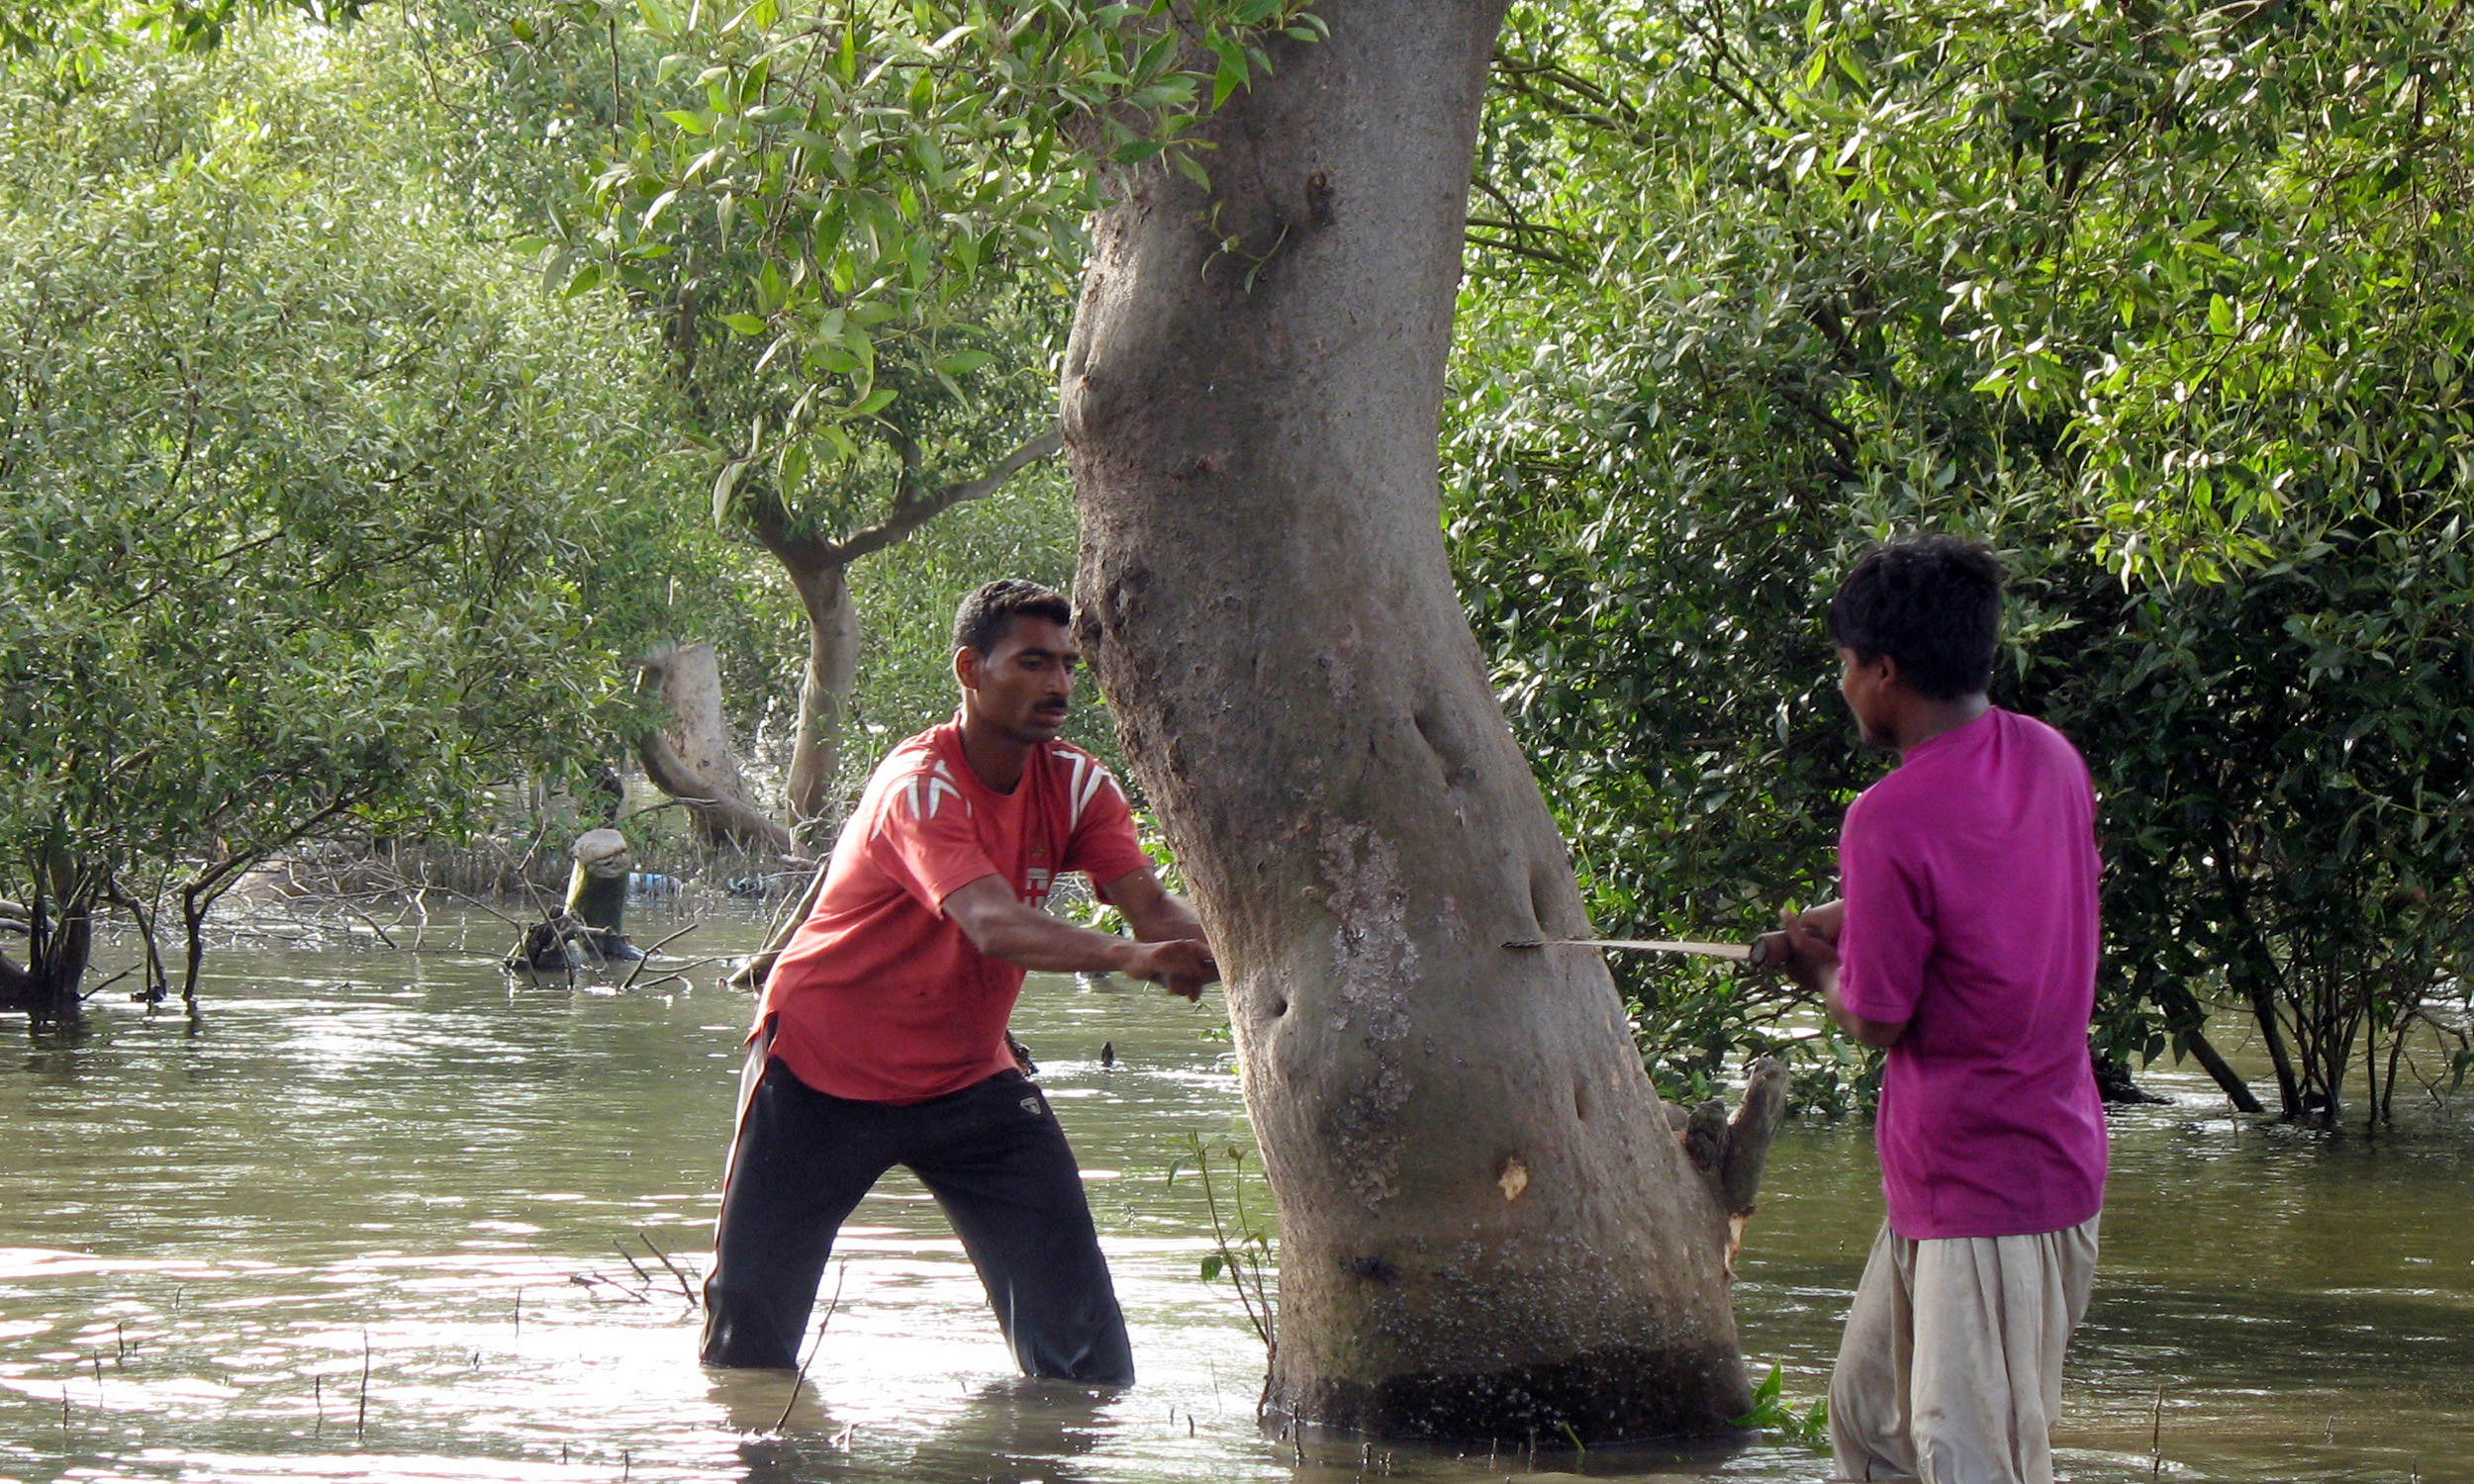 Workers cut mangrove trees near Baba Island off Karachi's coast